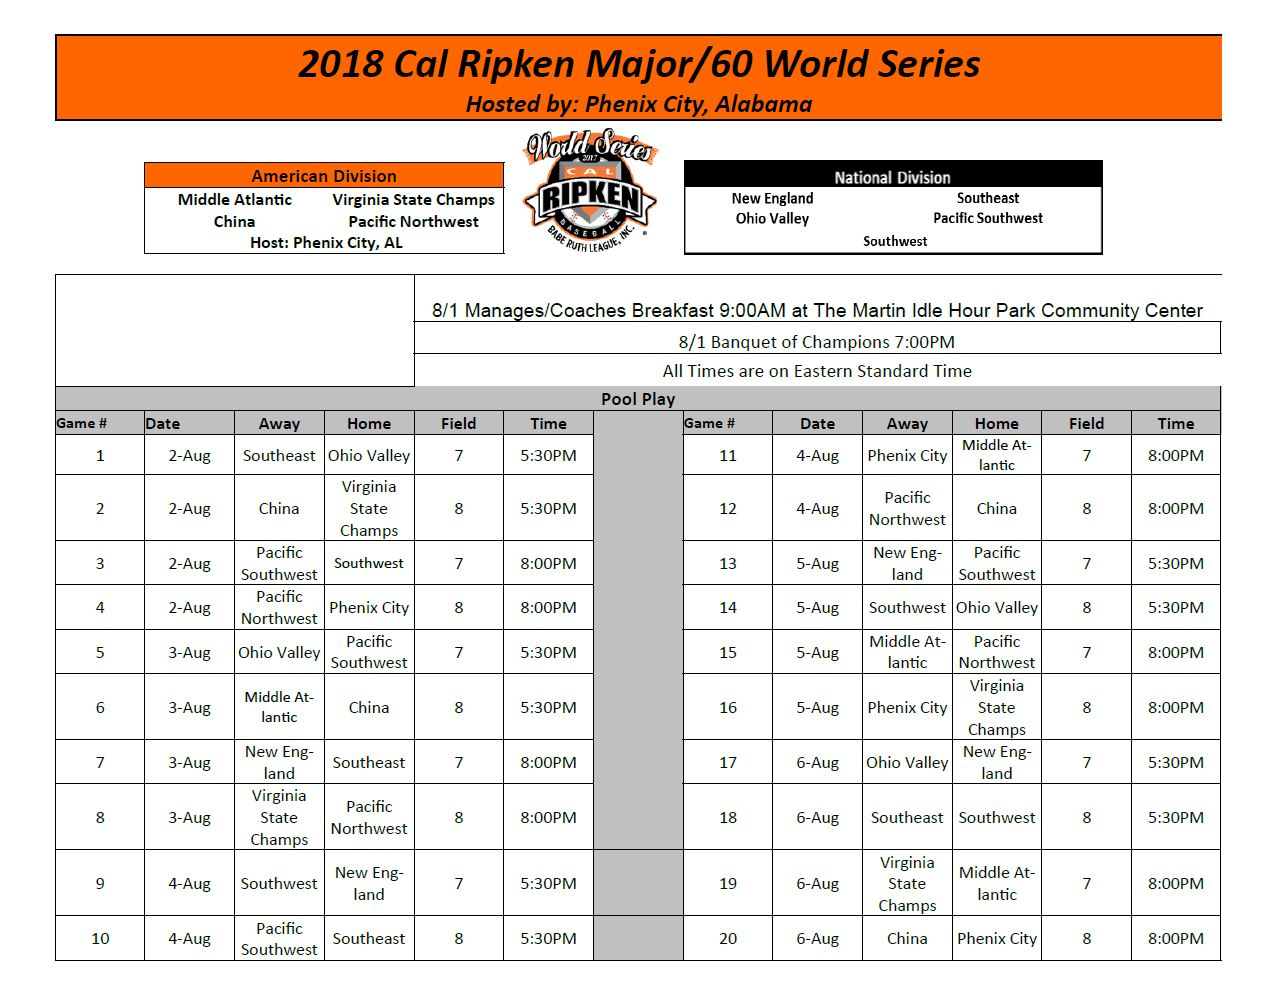 Our Mission | Cal Ripken World Series - Phenix City, Alabama